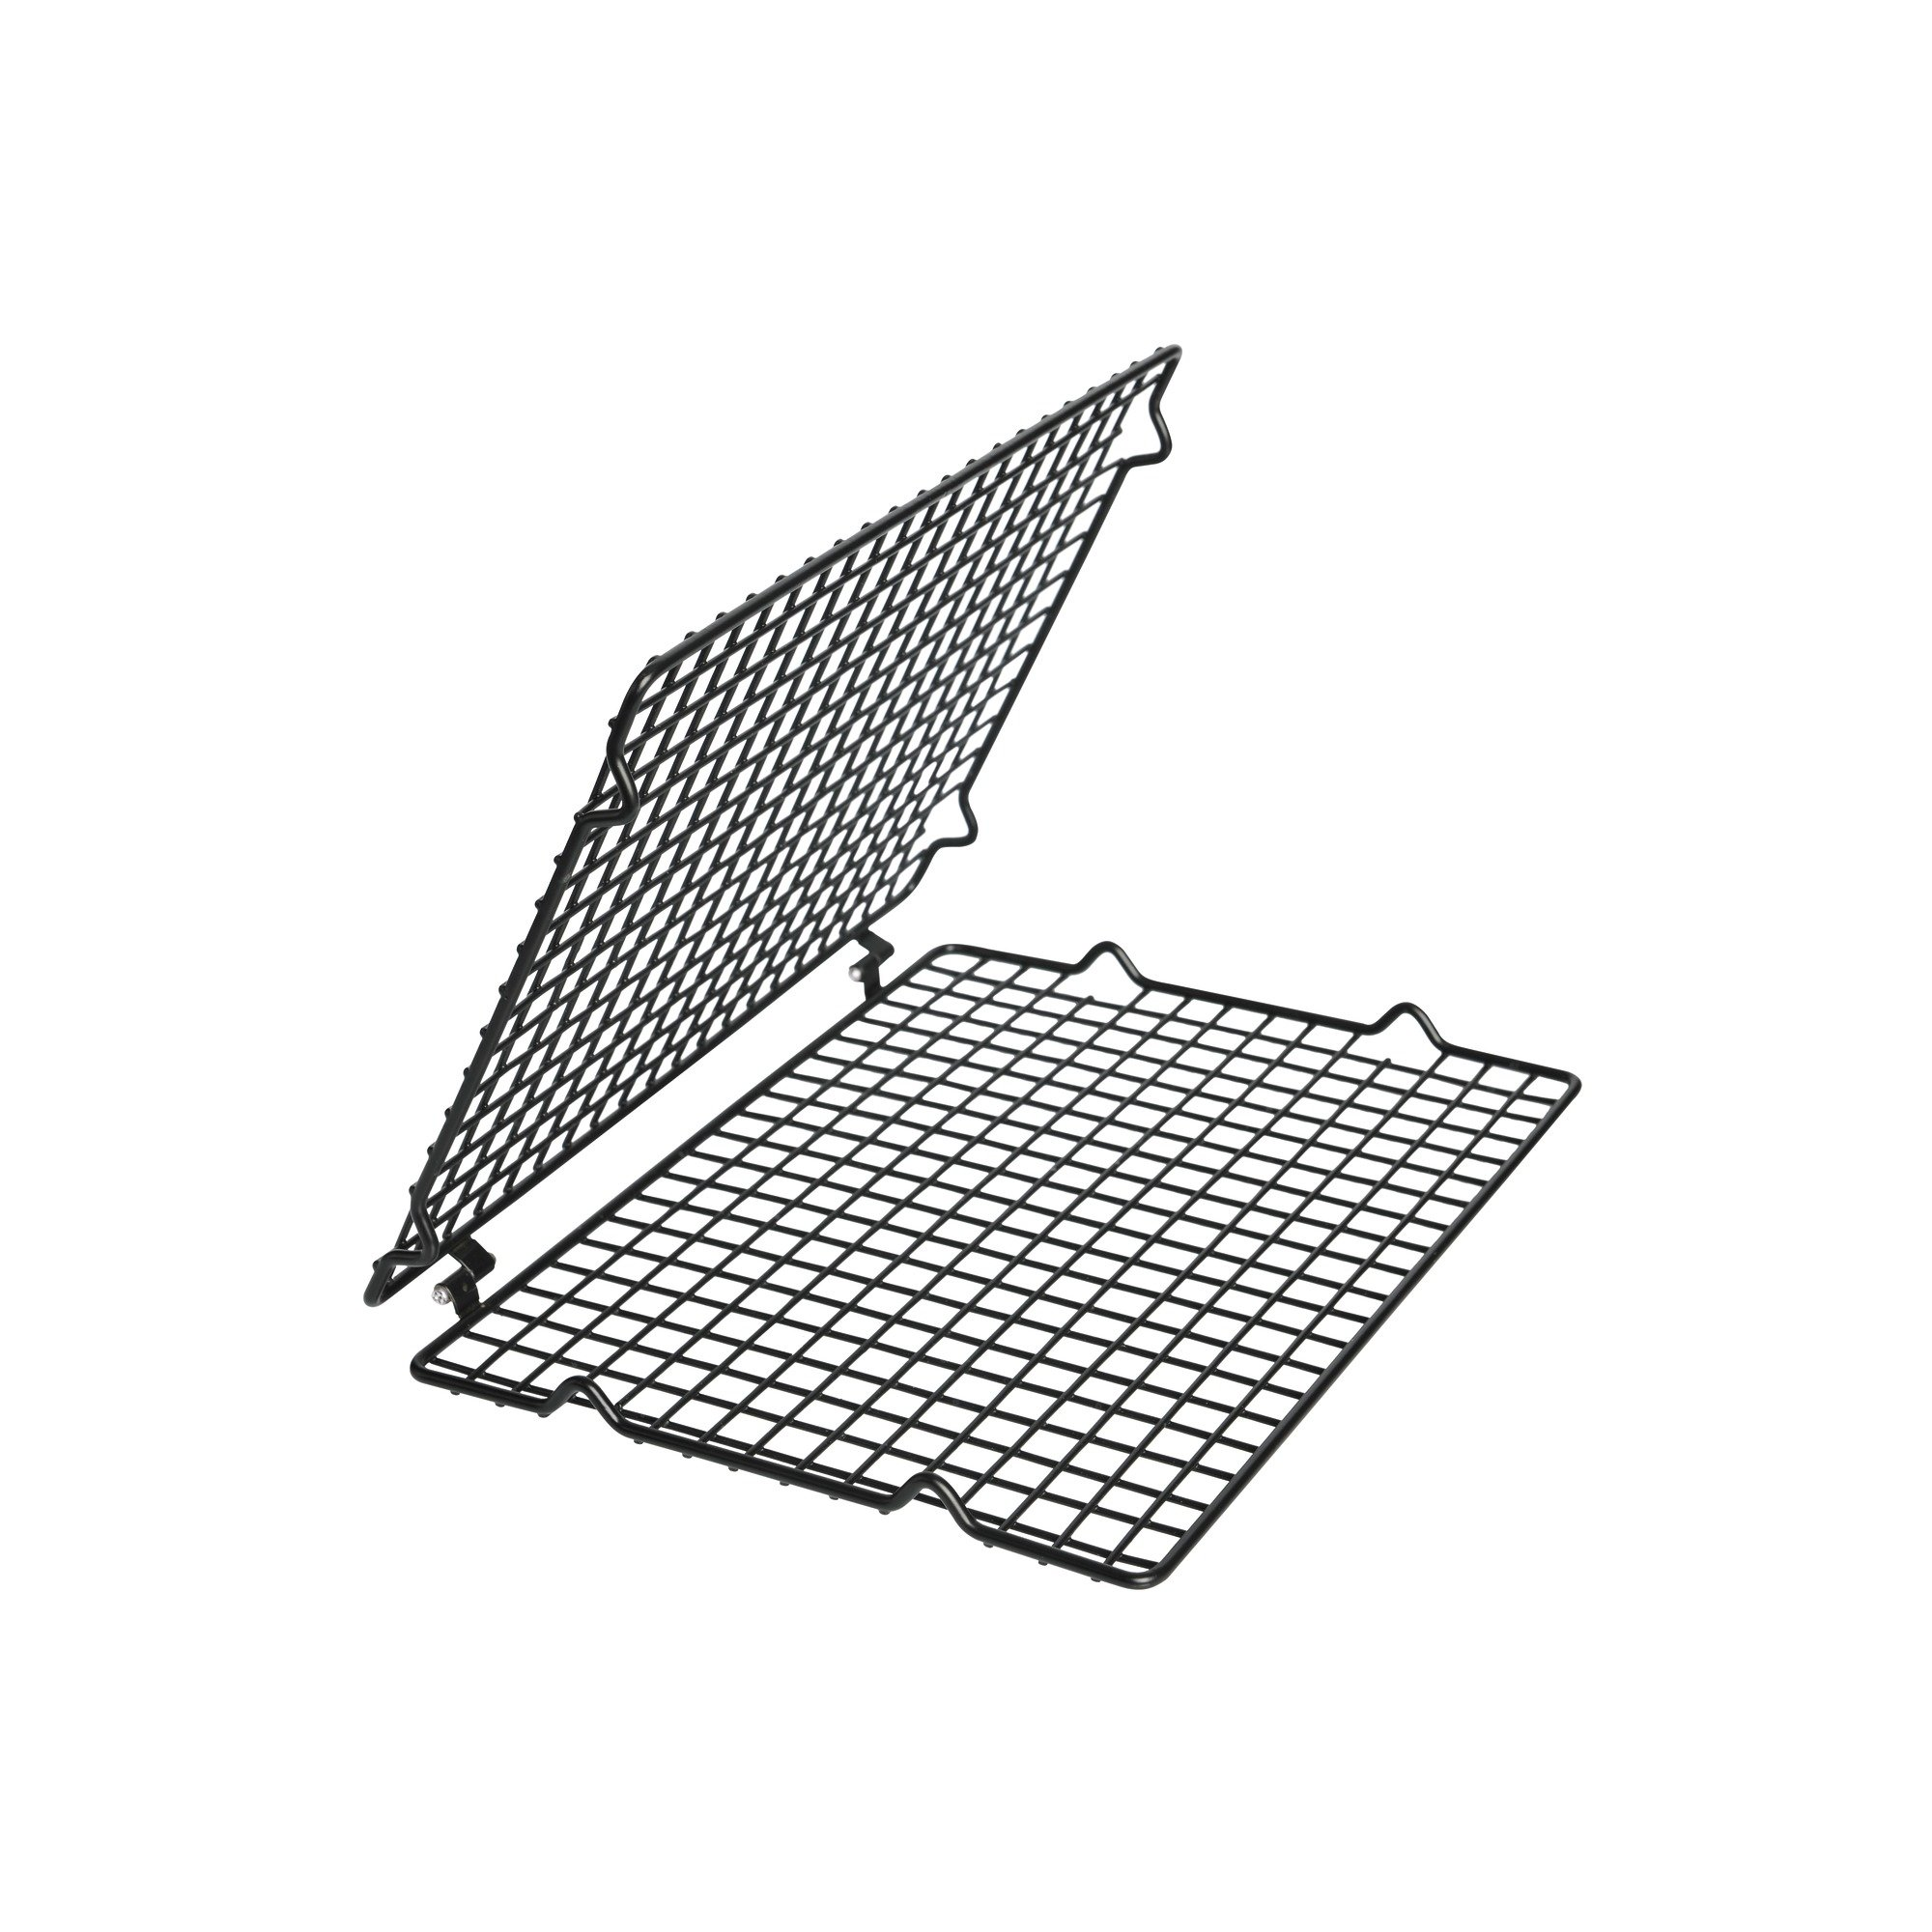 Kaiser 769462 17.91'' x 11.81'' Foldable Cooling Rack, Silver by Kaiser (Image #3)